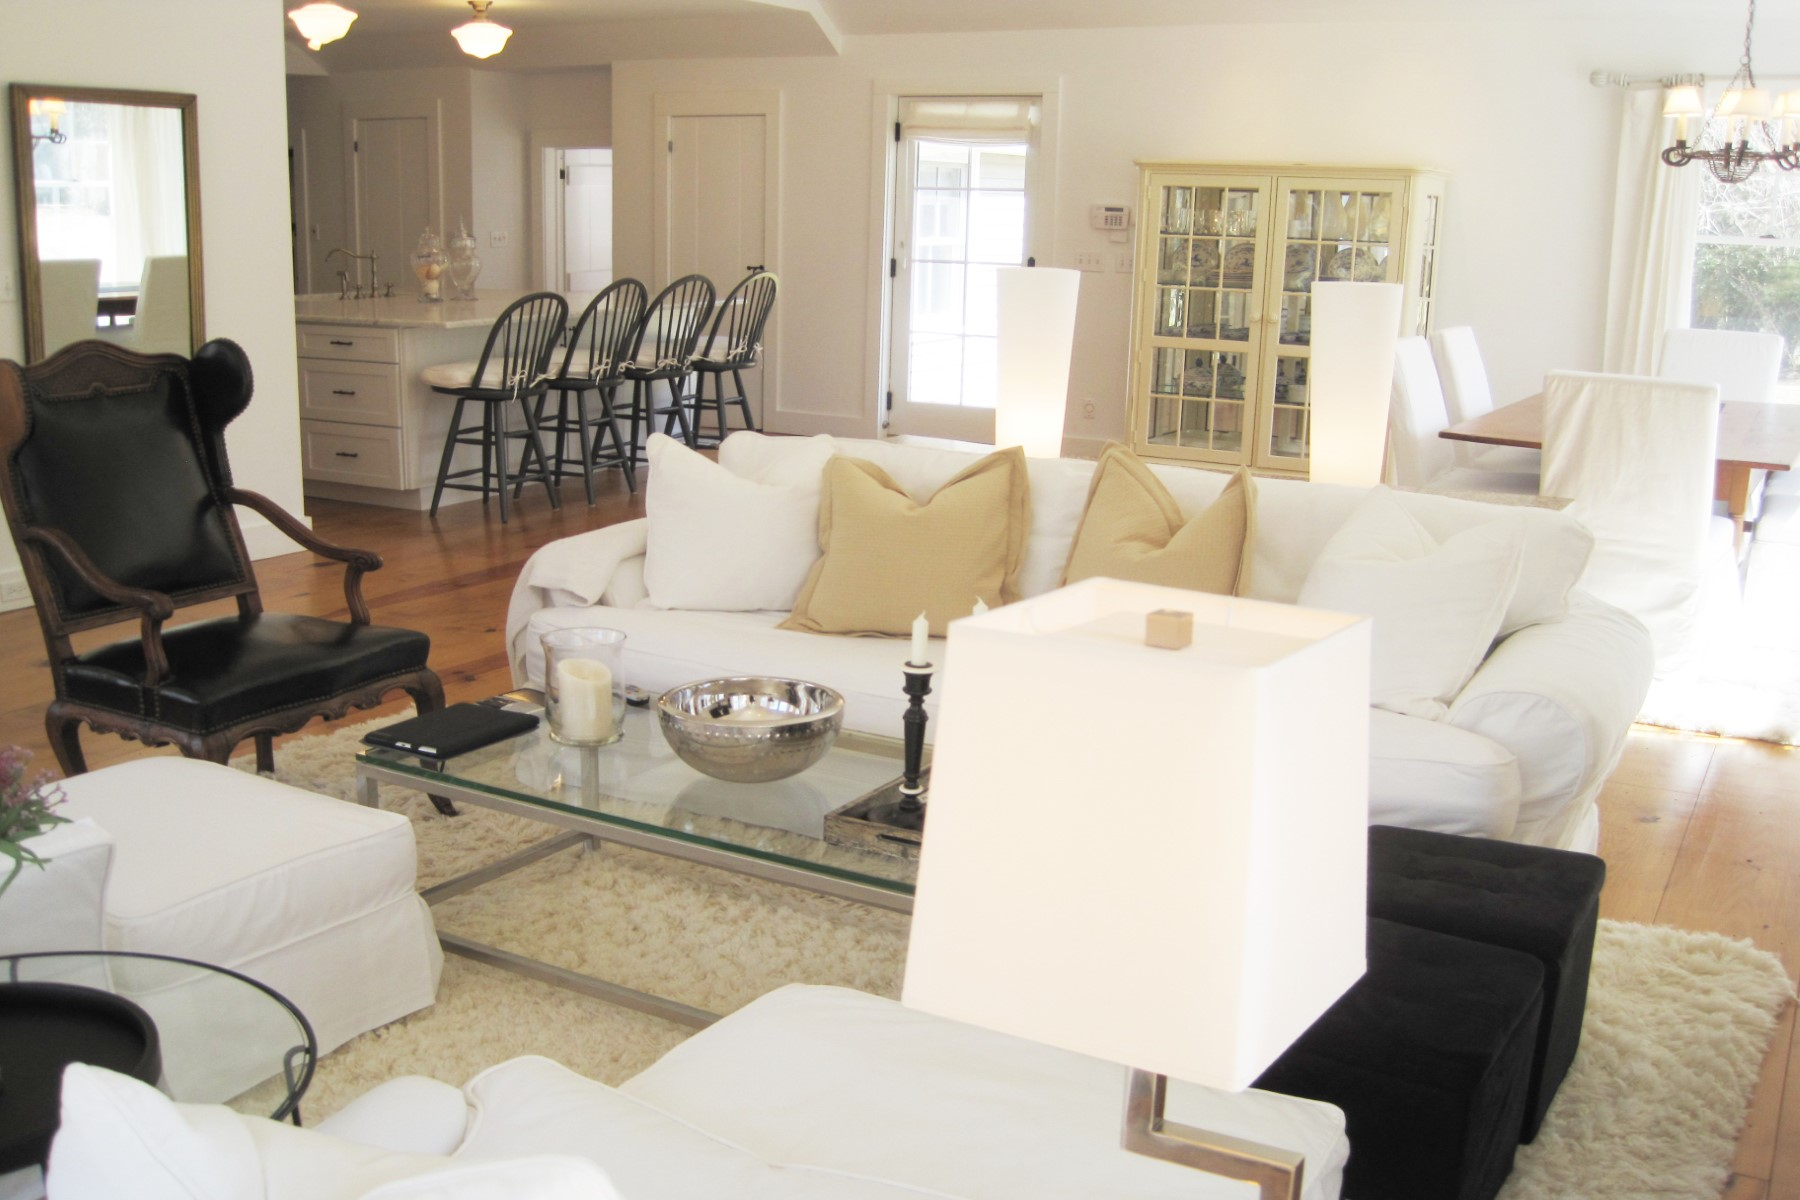 Property Of Hamptons Chic - Minutes to Beach